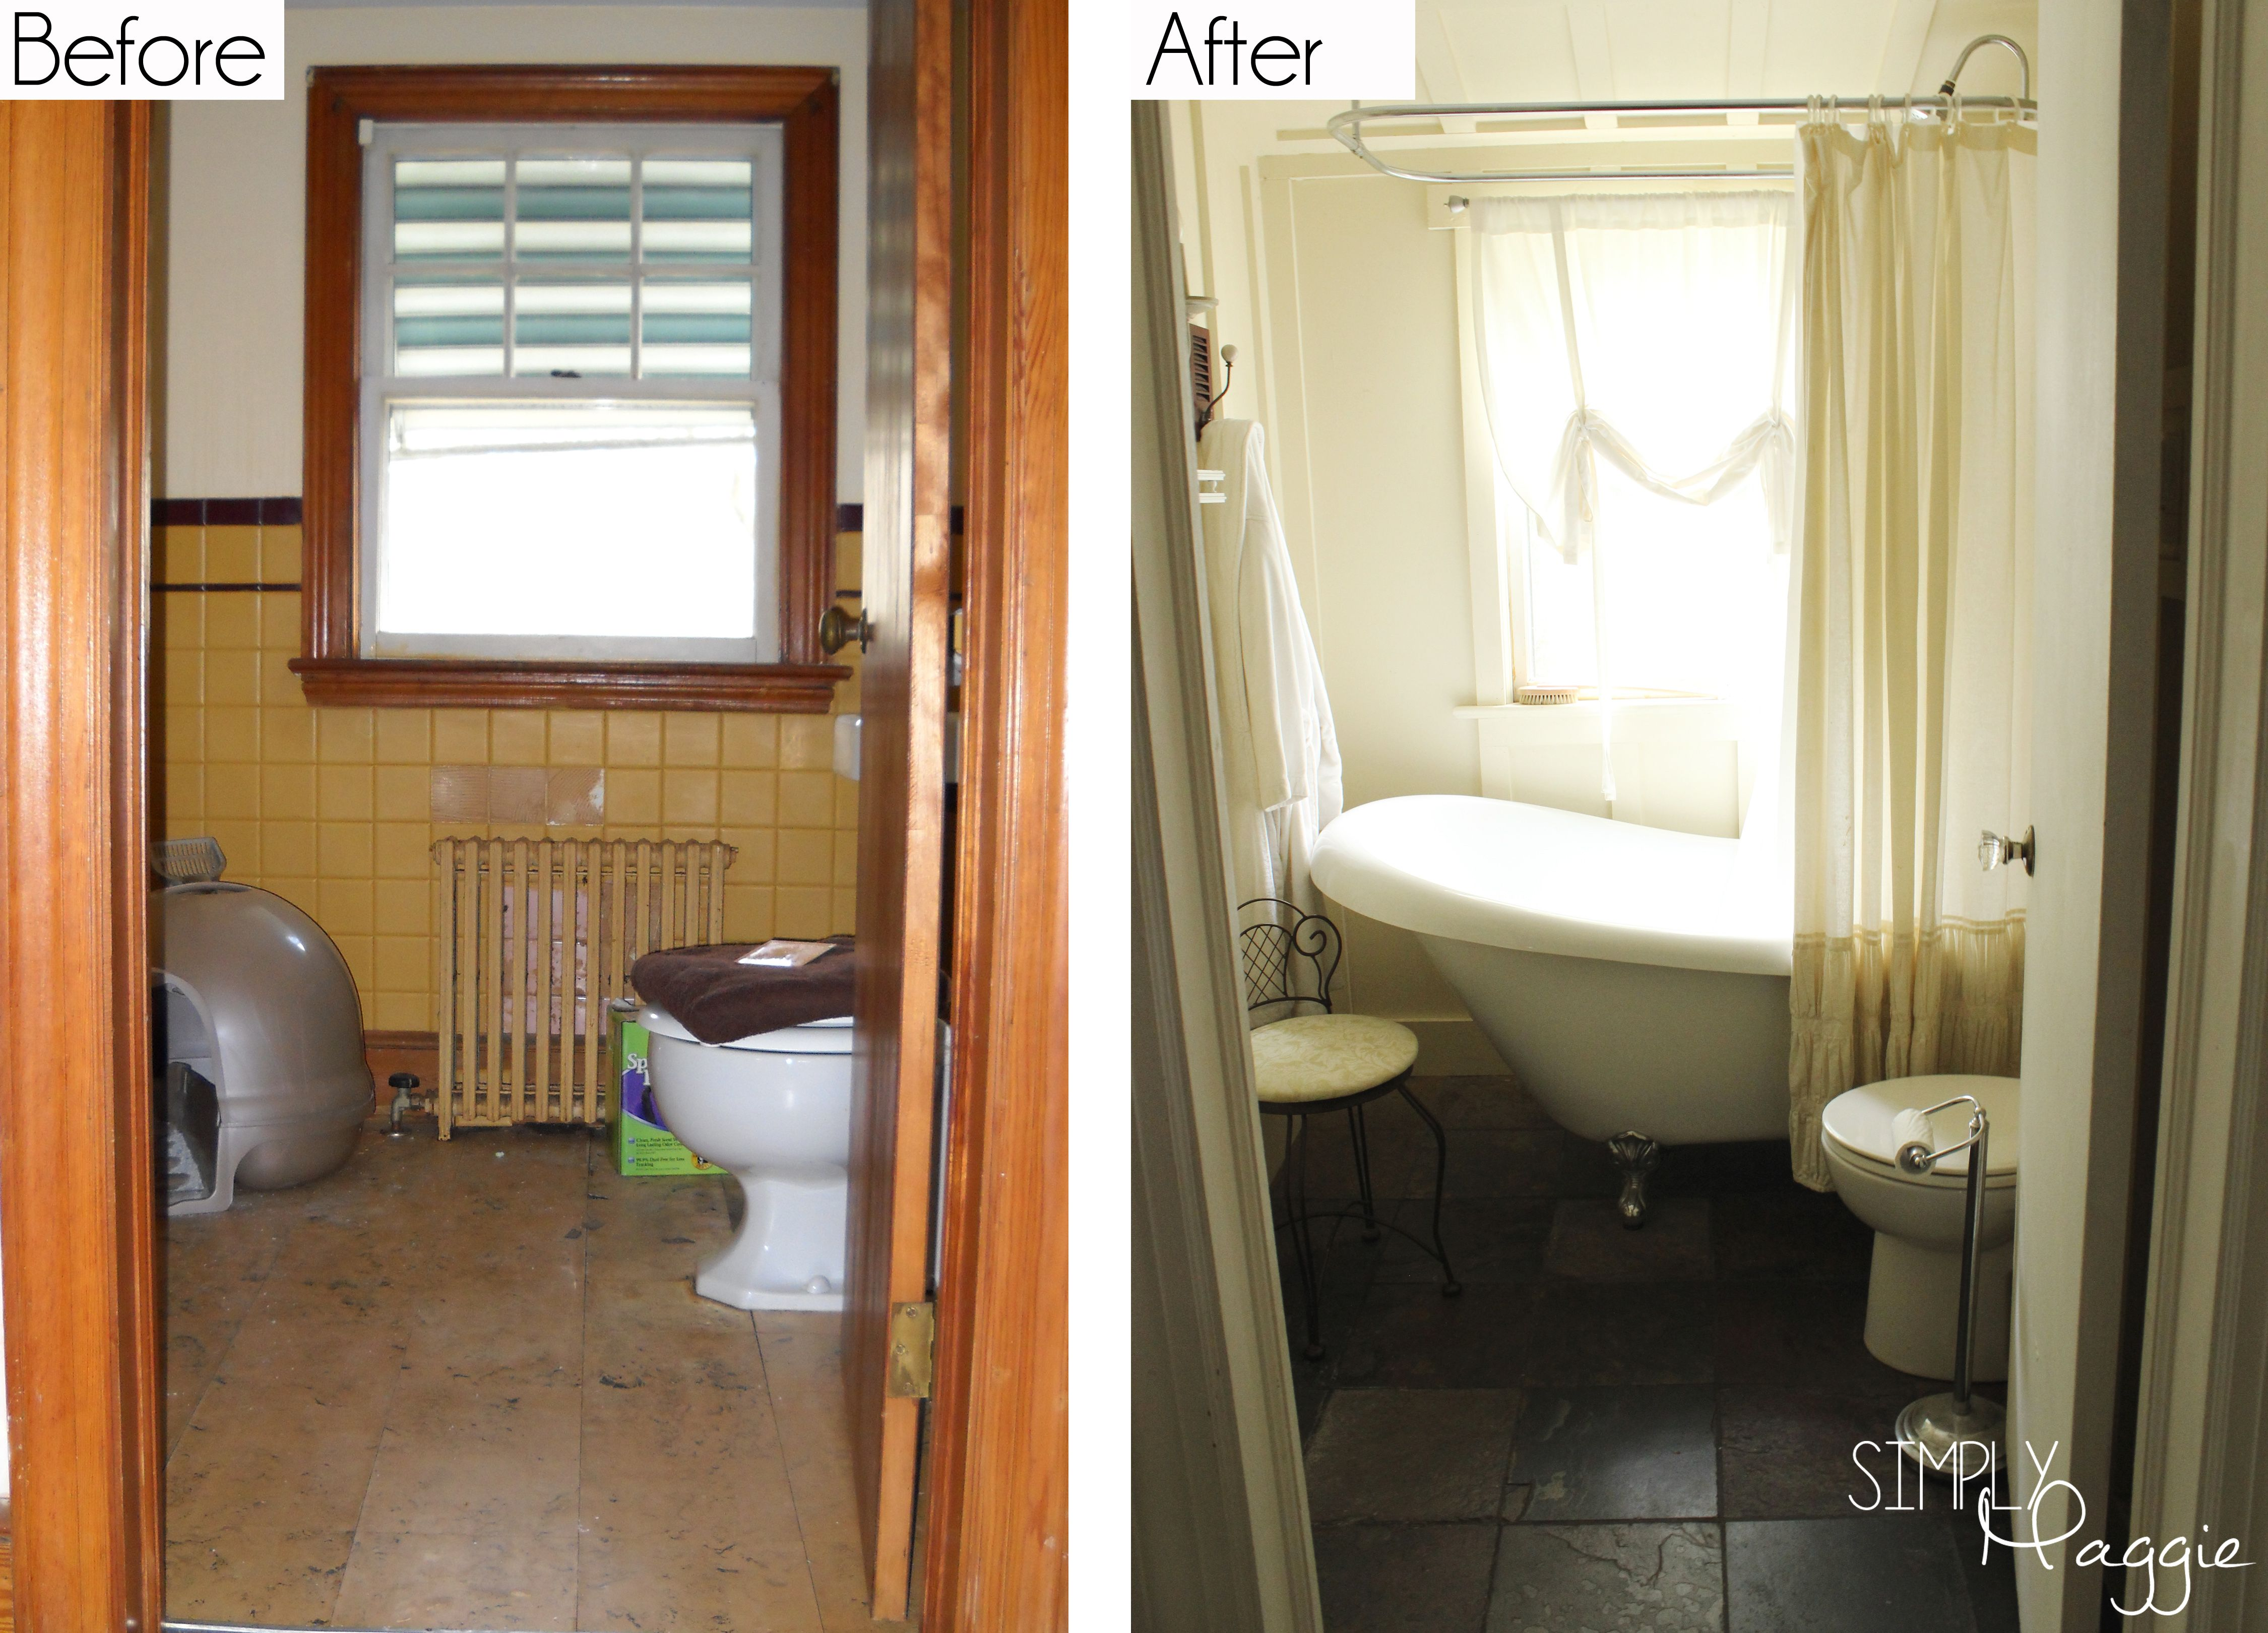 Image Gallery For Website Cottage Renovation Before and After Simply Maggie